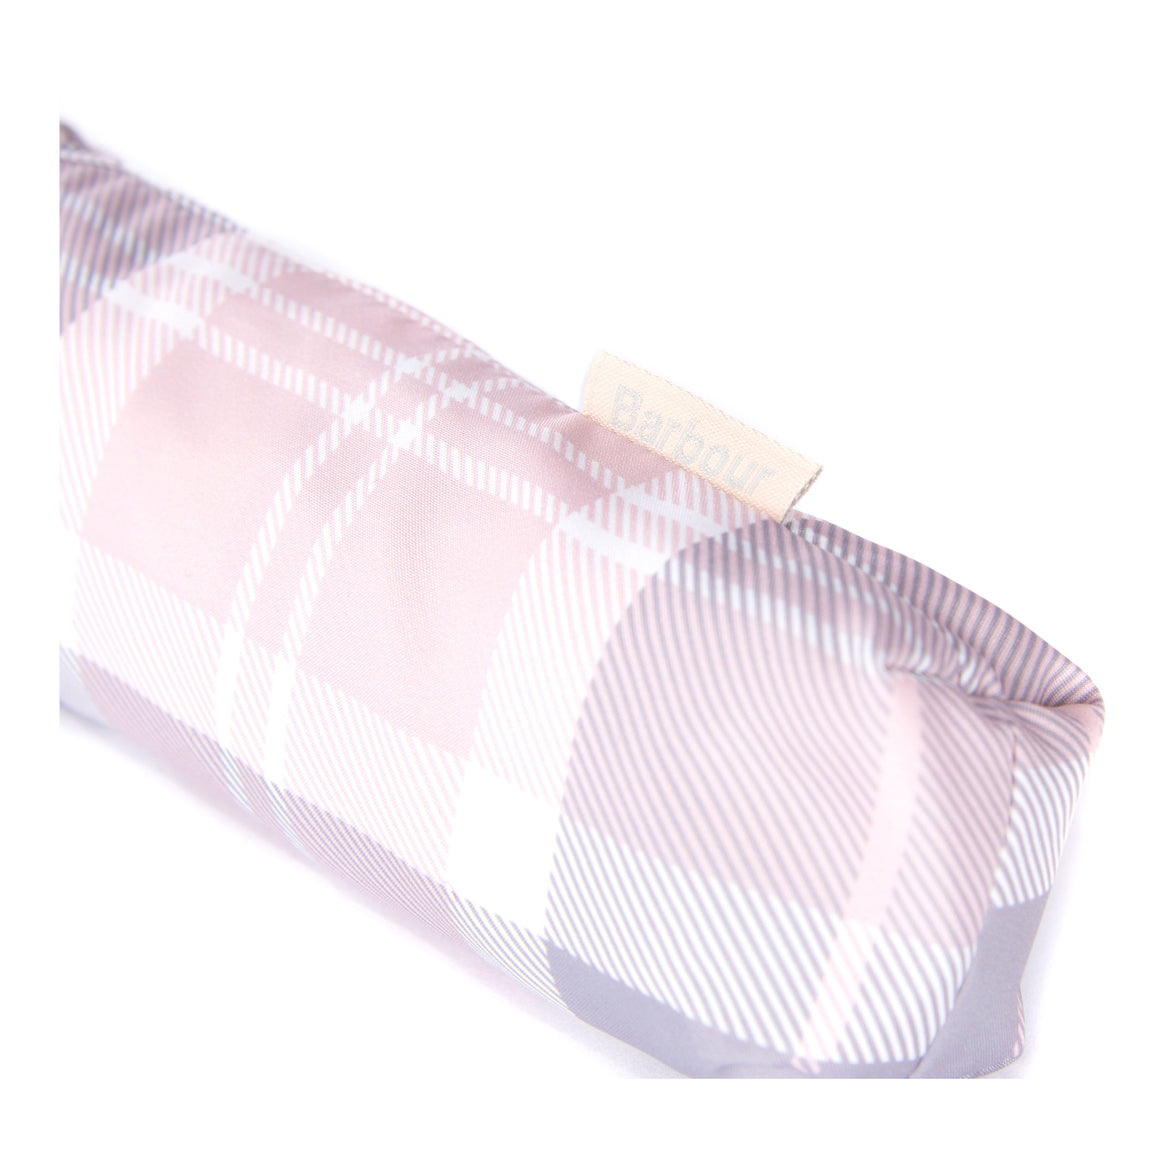 Portee Umbrella in Pink/Grey/Tartan